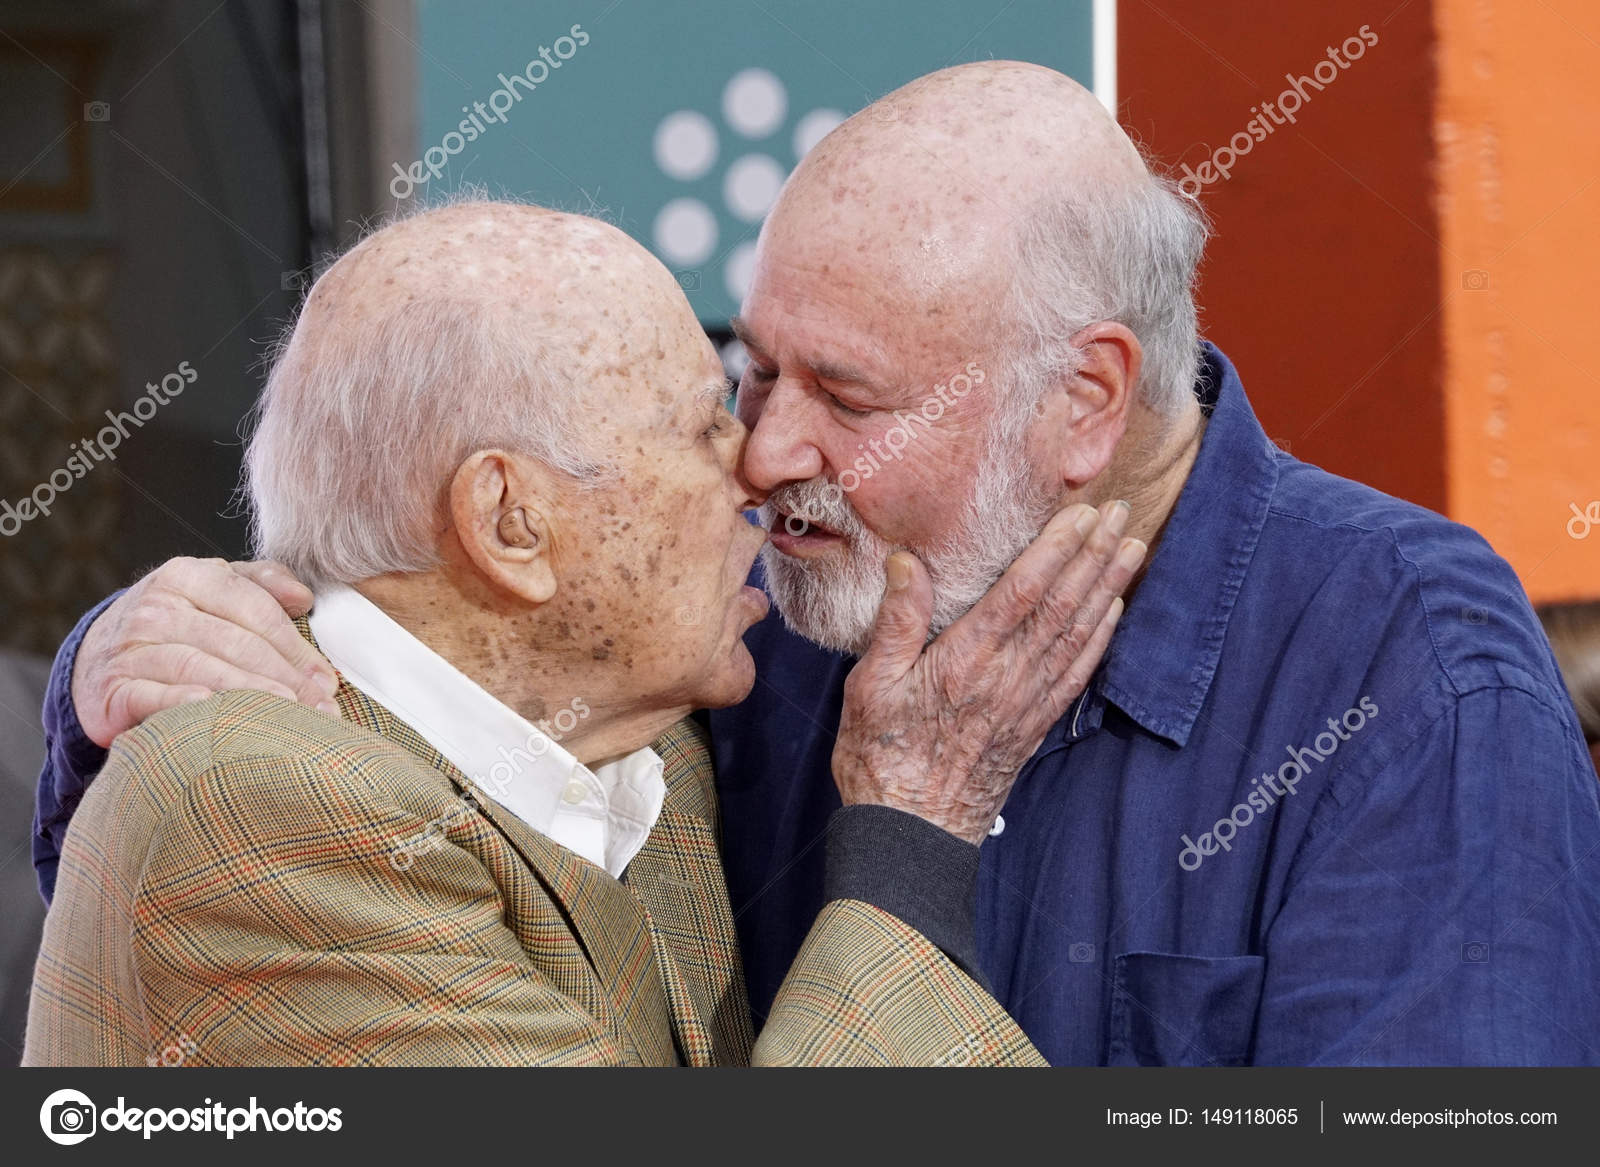 actors carl and rob reiner stock editorial photo jean nelson